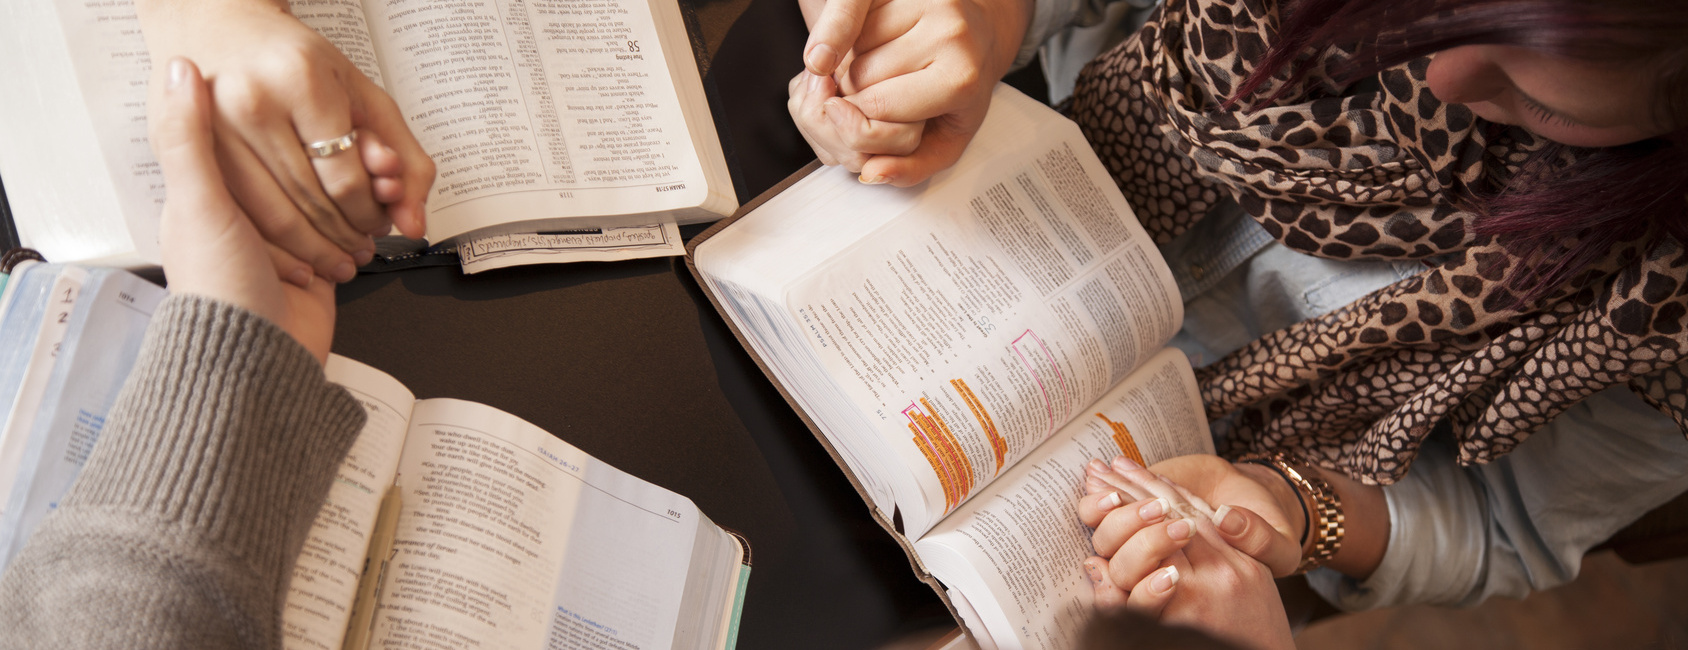 Rooted in the Bible and relevant to issues faced by former Muslims